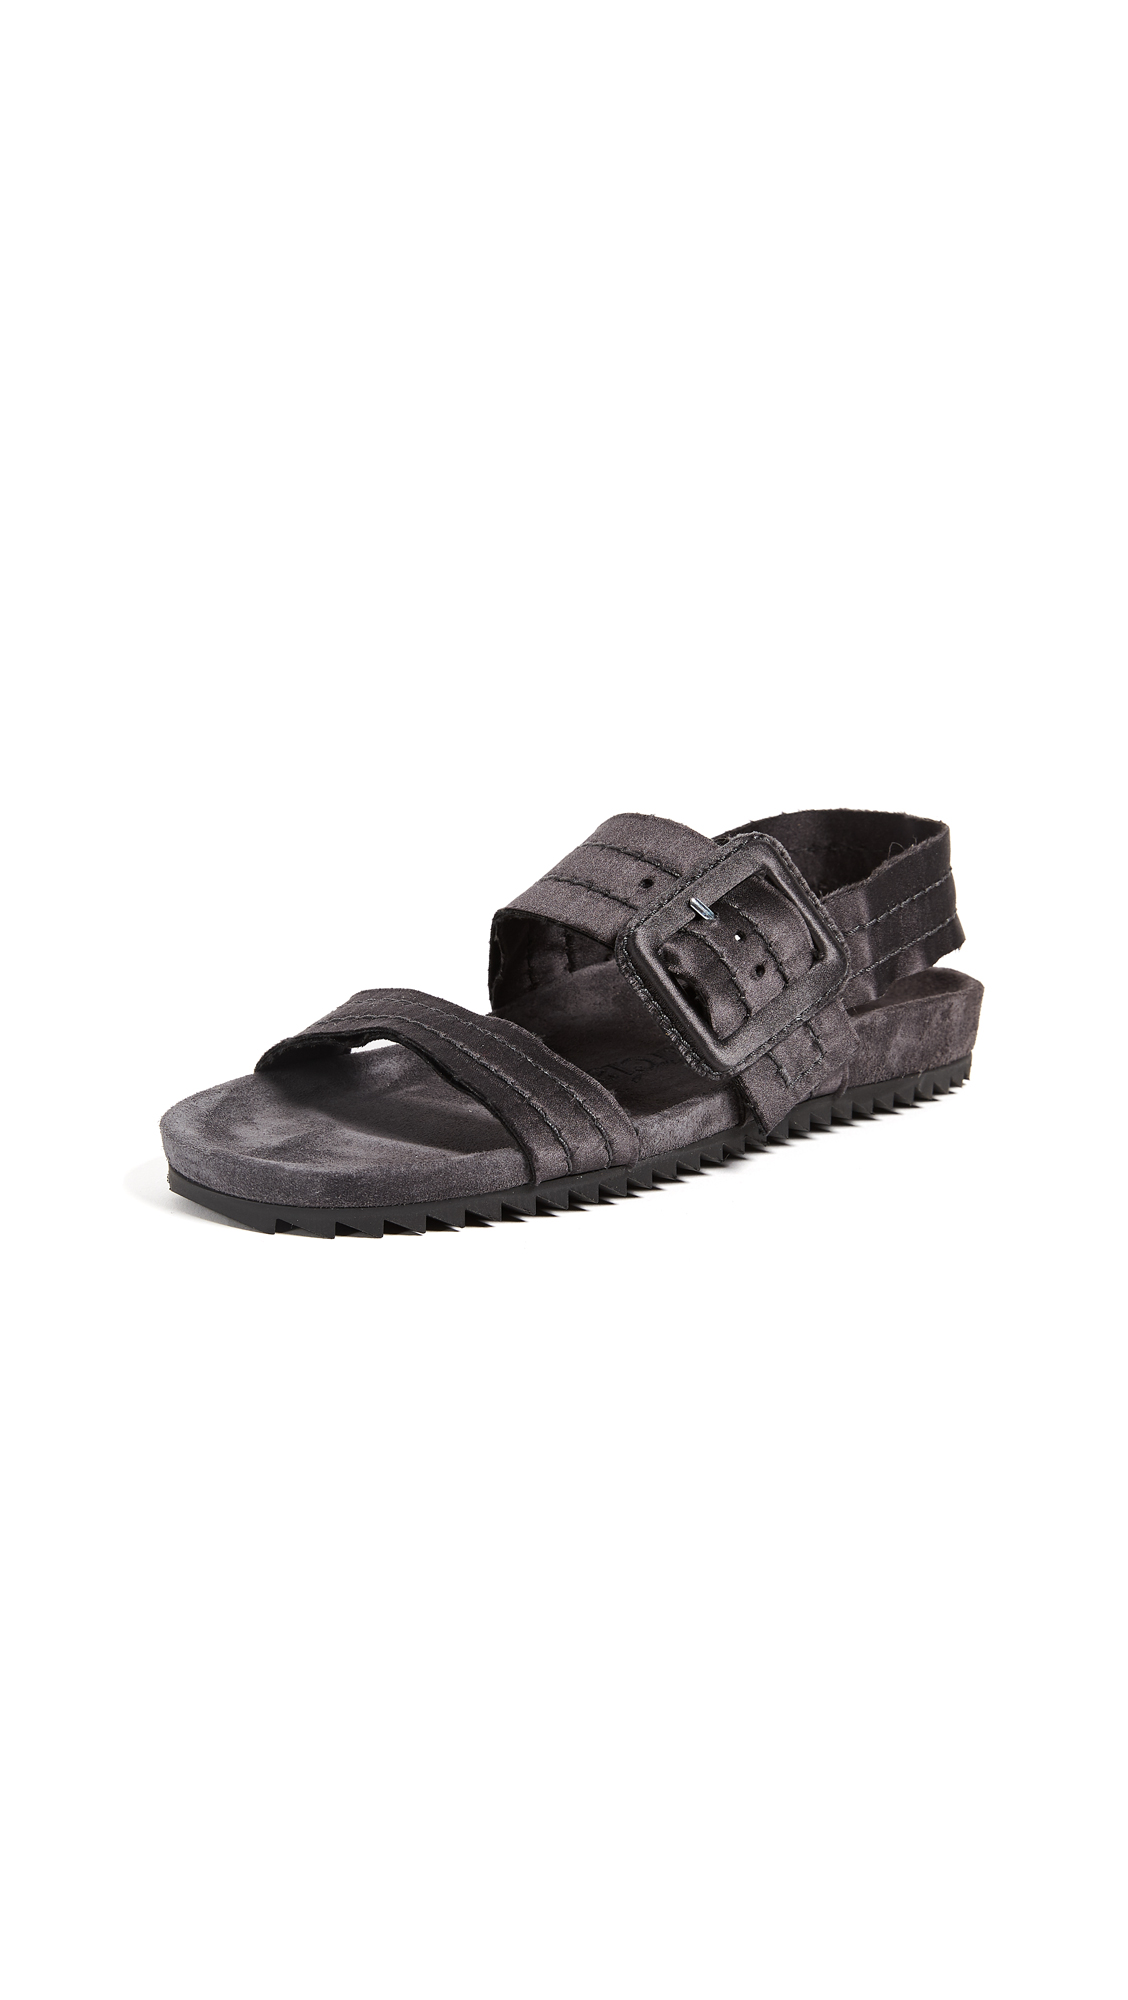 Pedro Garcia Alfonsina Sandals - Off Black